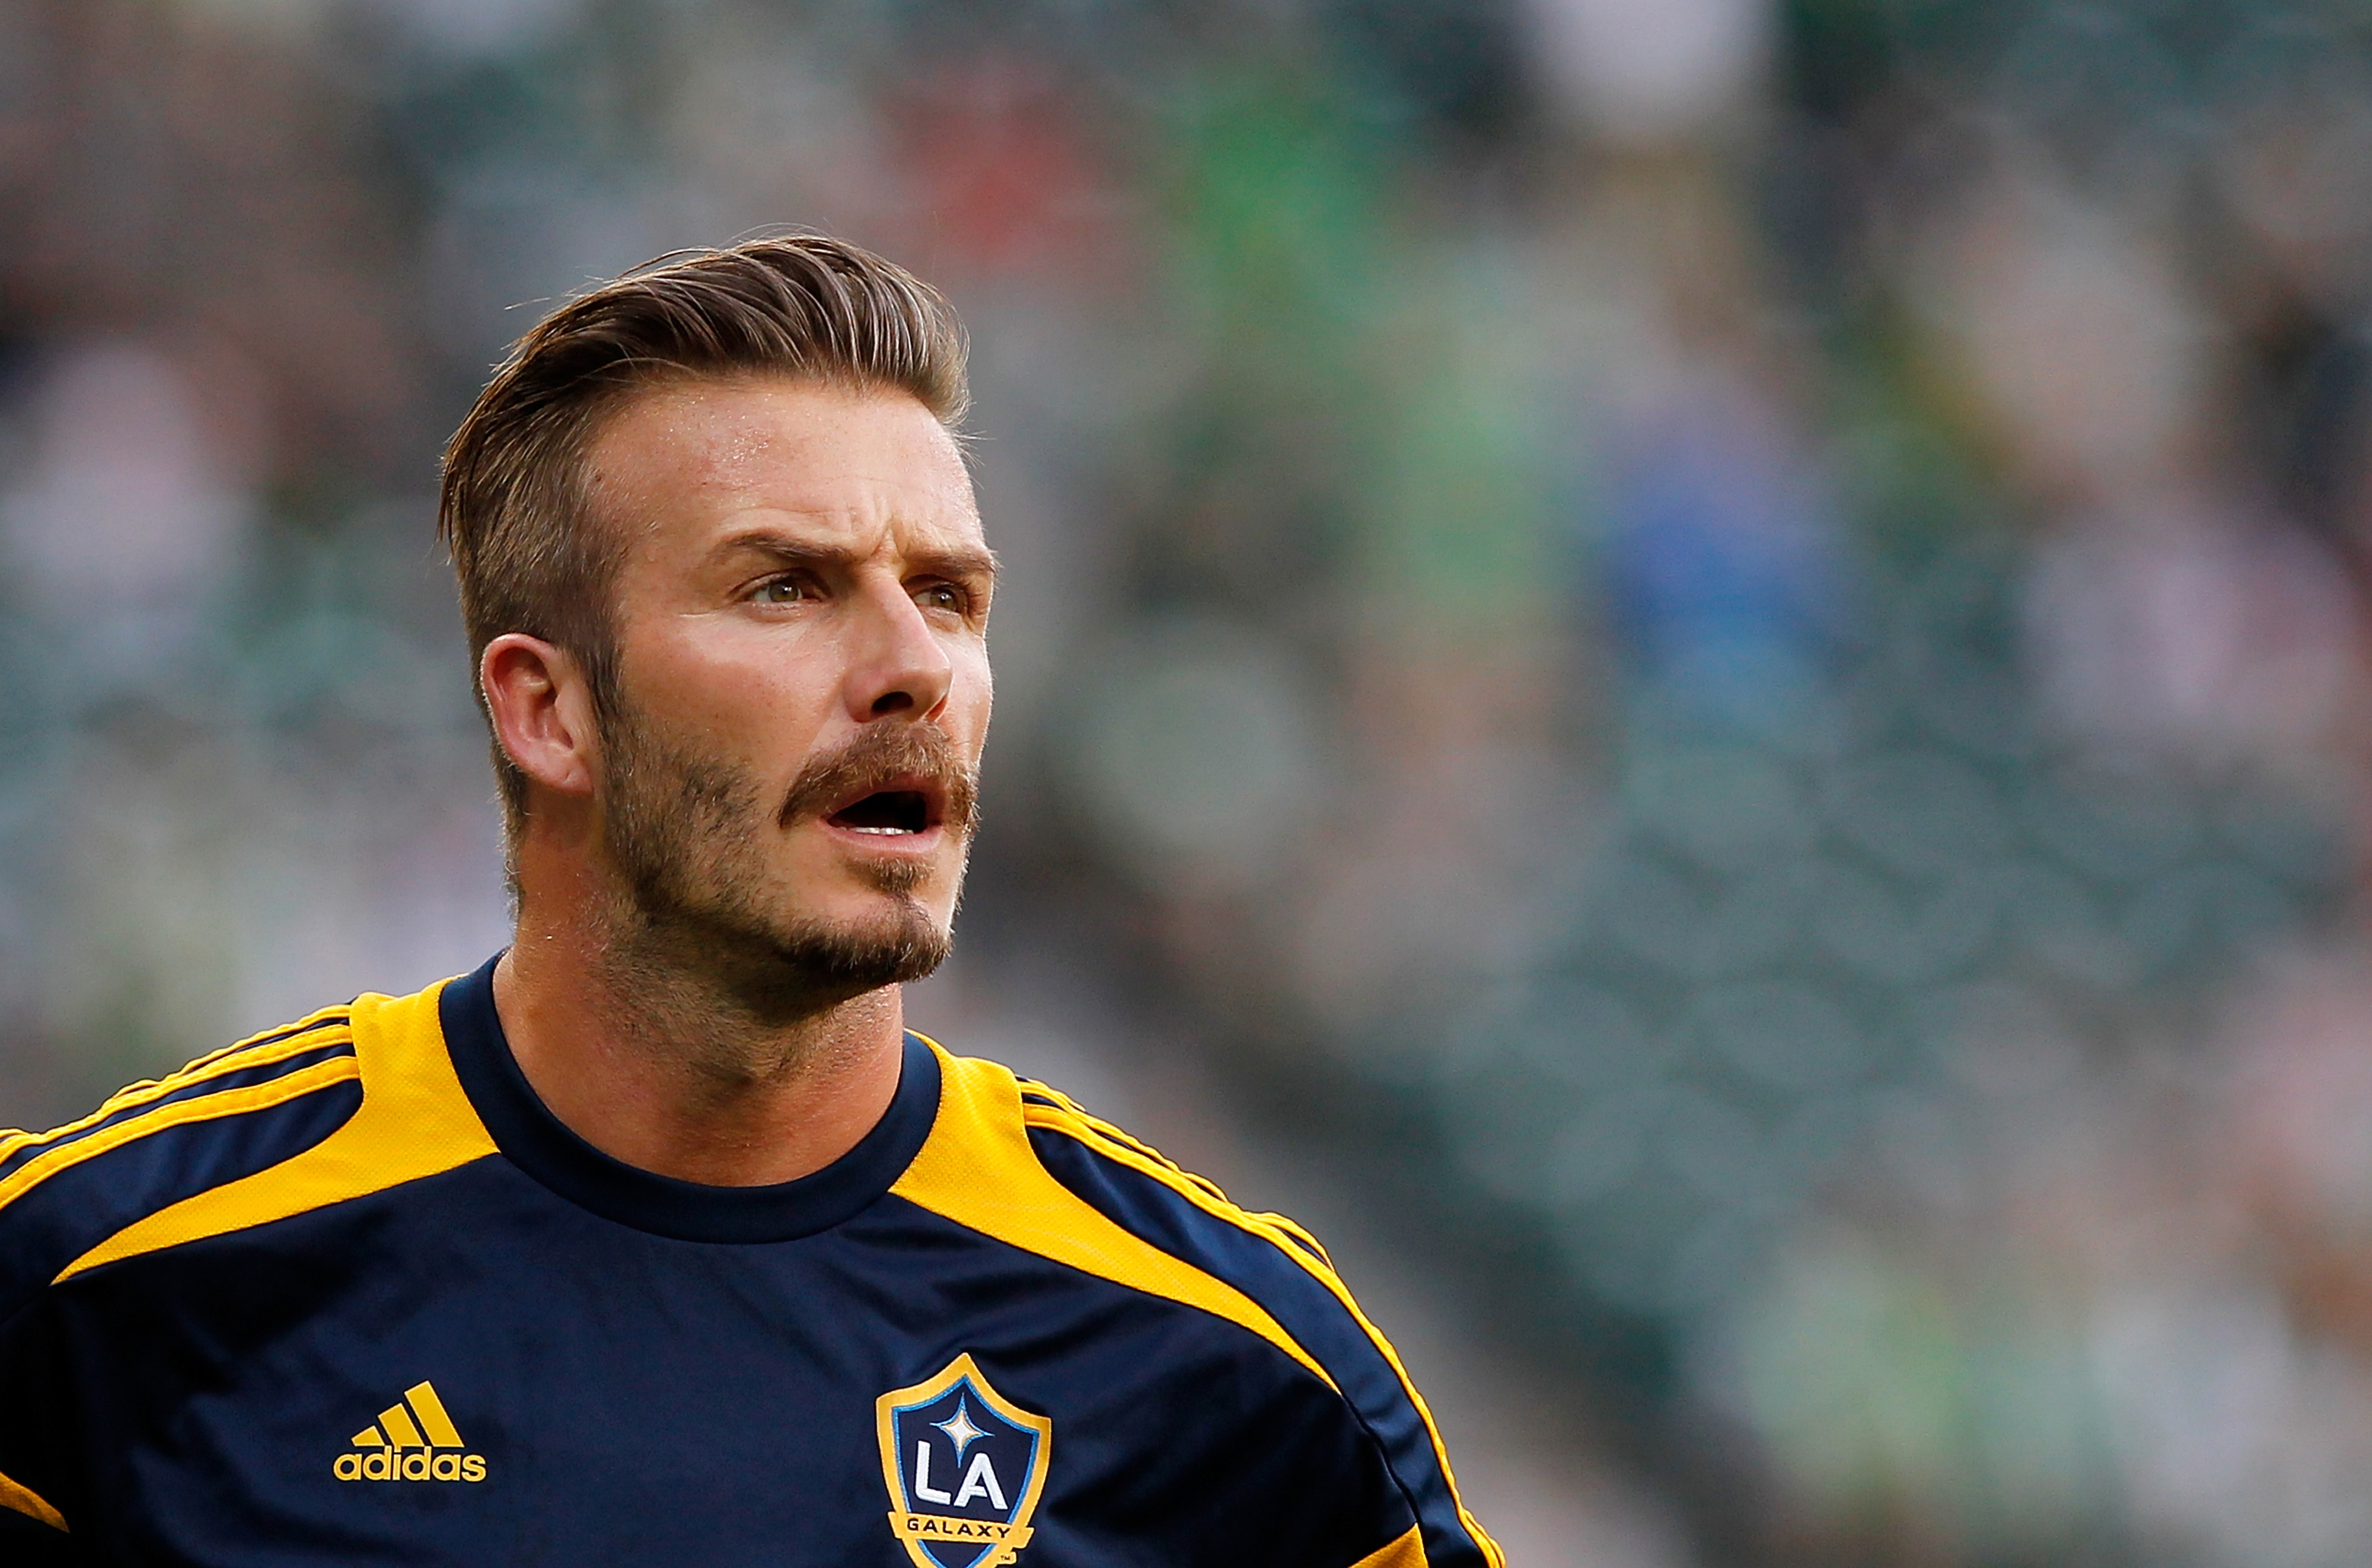 PORTLAND, OR - JULY 14:  David Beckham #23 of the Los Angeles Galaxy during the pregame warmup against  the Portland Timbers on July 14, 2012 at Jeld-Wen Field in Portland, Oregon.  (Photo by Jonathan Ferrey/Getty Images)